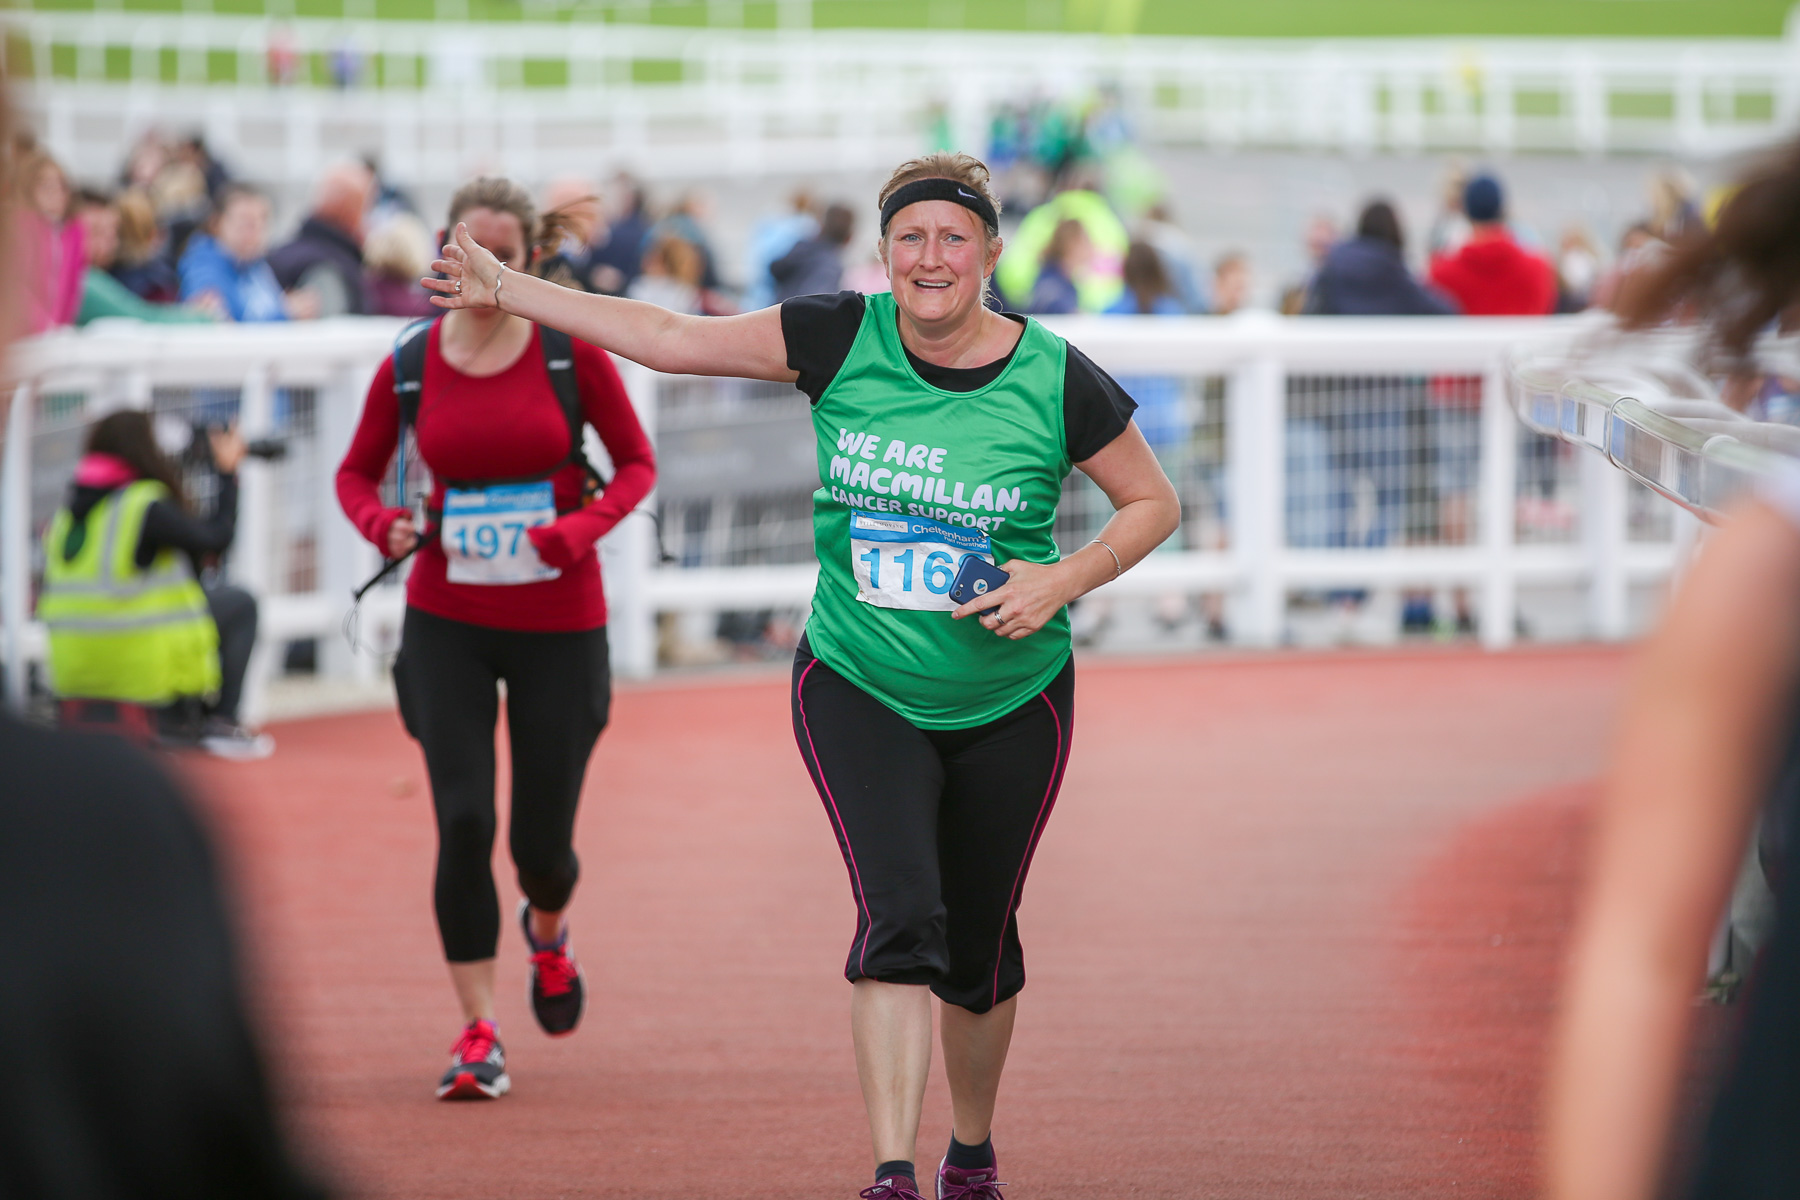 Macmillan-charity-marathon-run-cheltenham-racecourse-september-2018-natalia-smith-photography0330.jpg